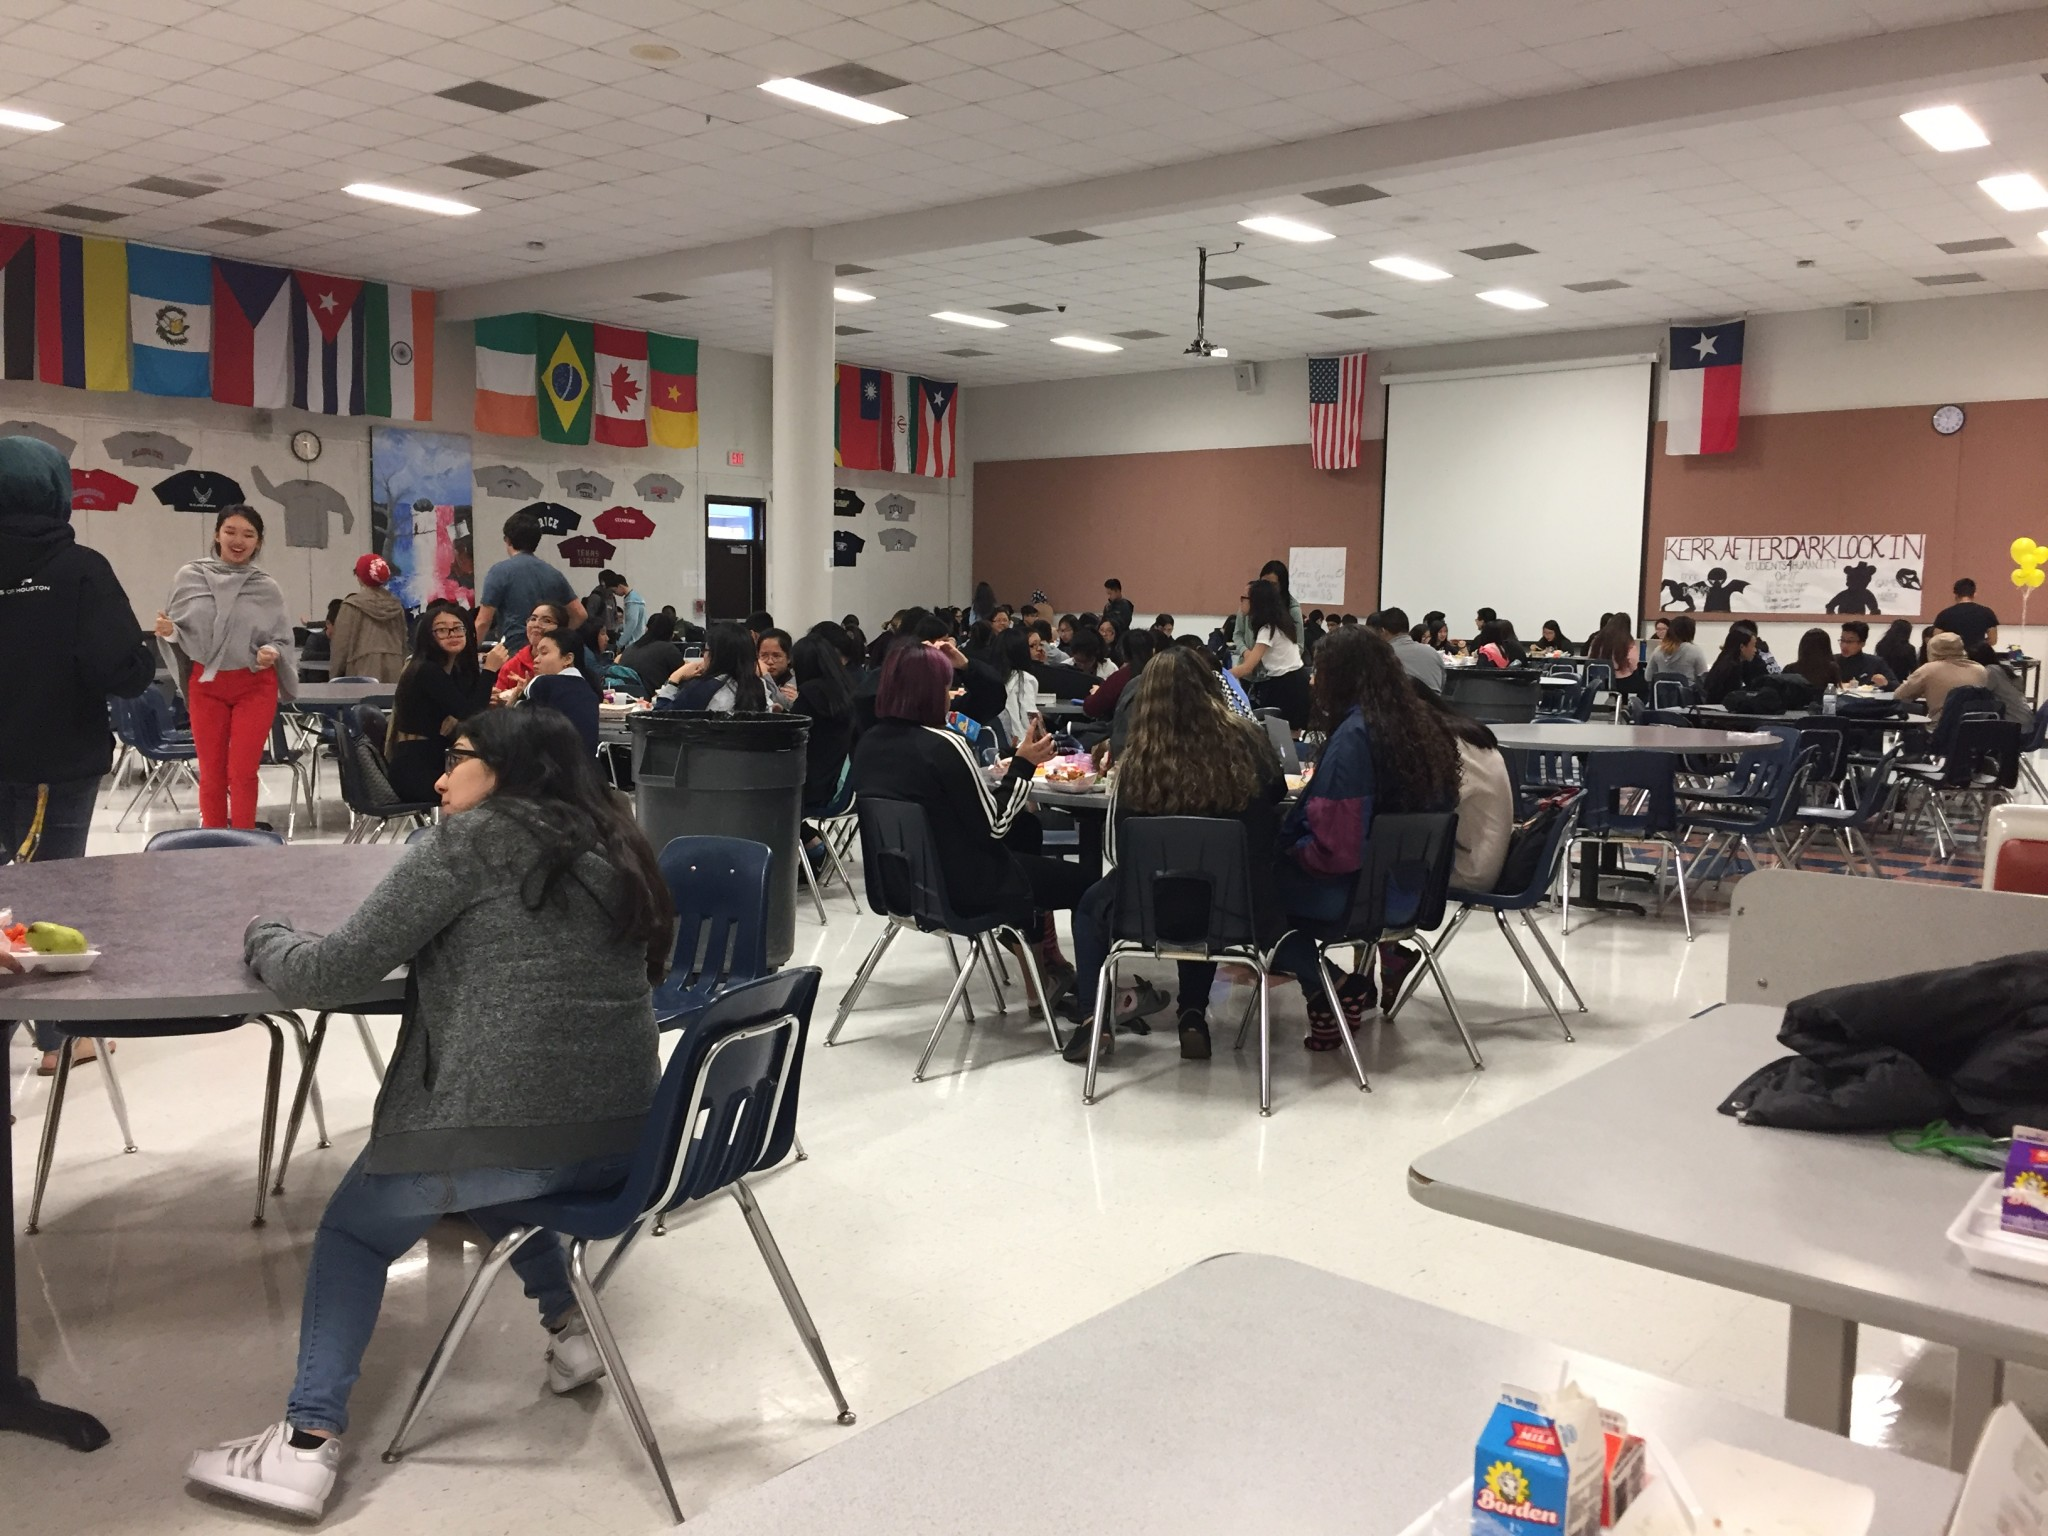 B lunch students sit together in large groups and enjoy their lunch. Various organizations are selling and promoting their purpose.